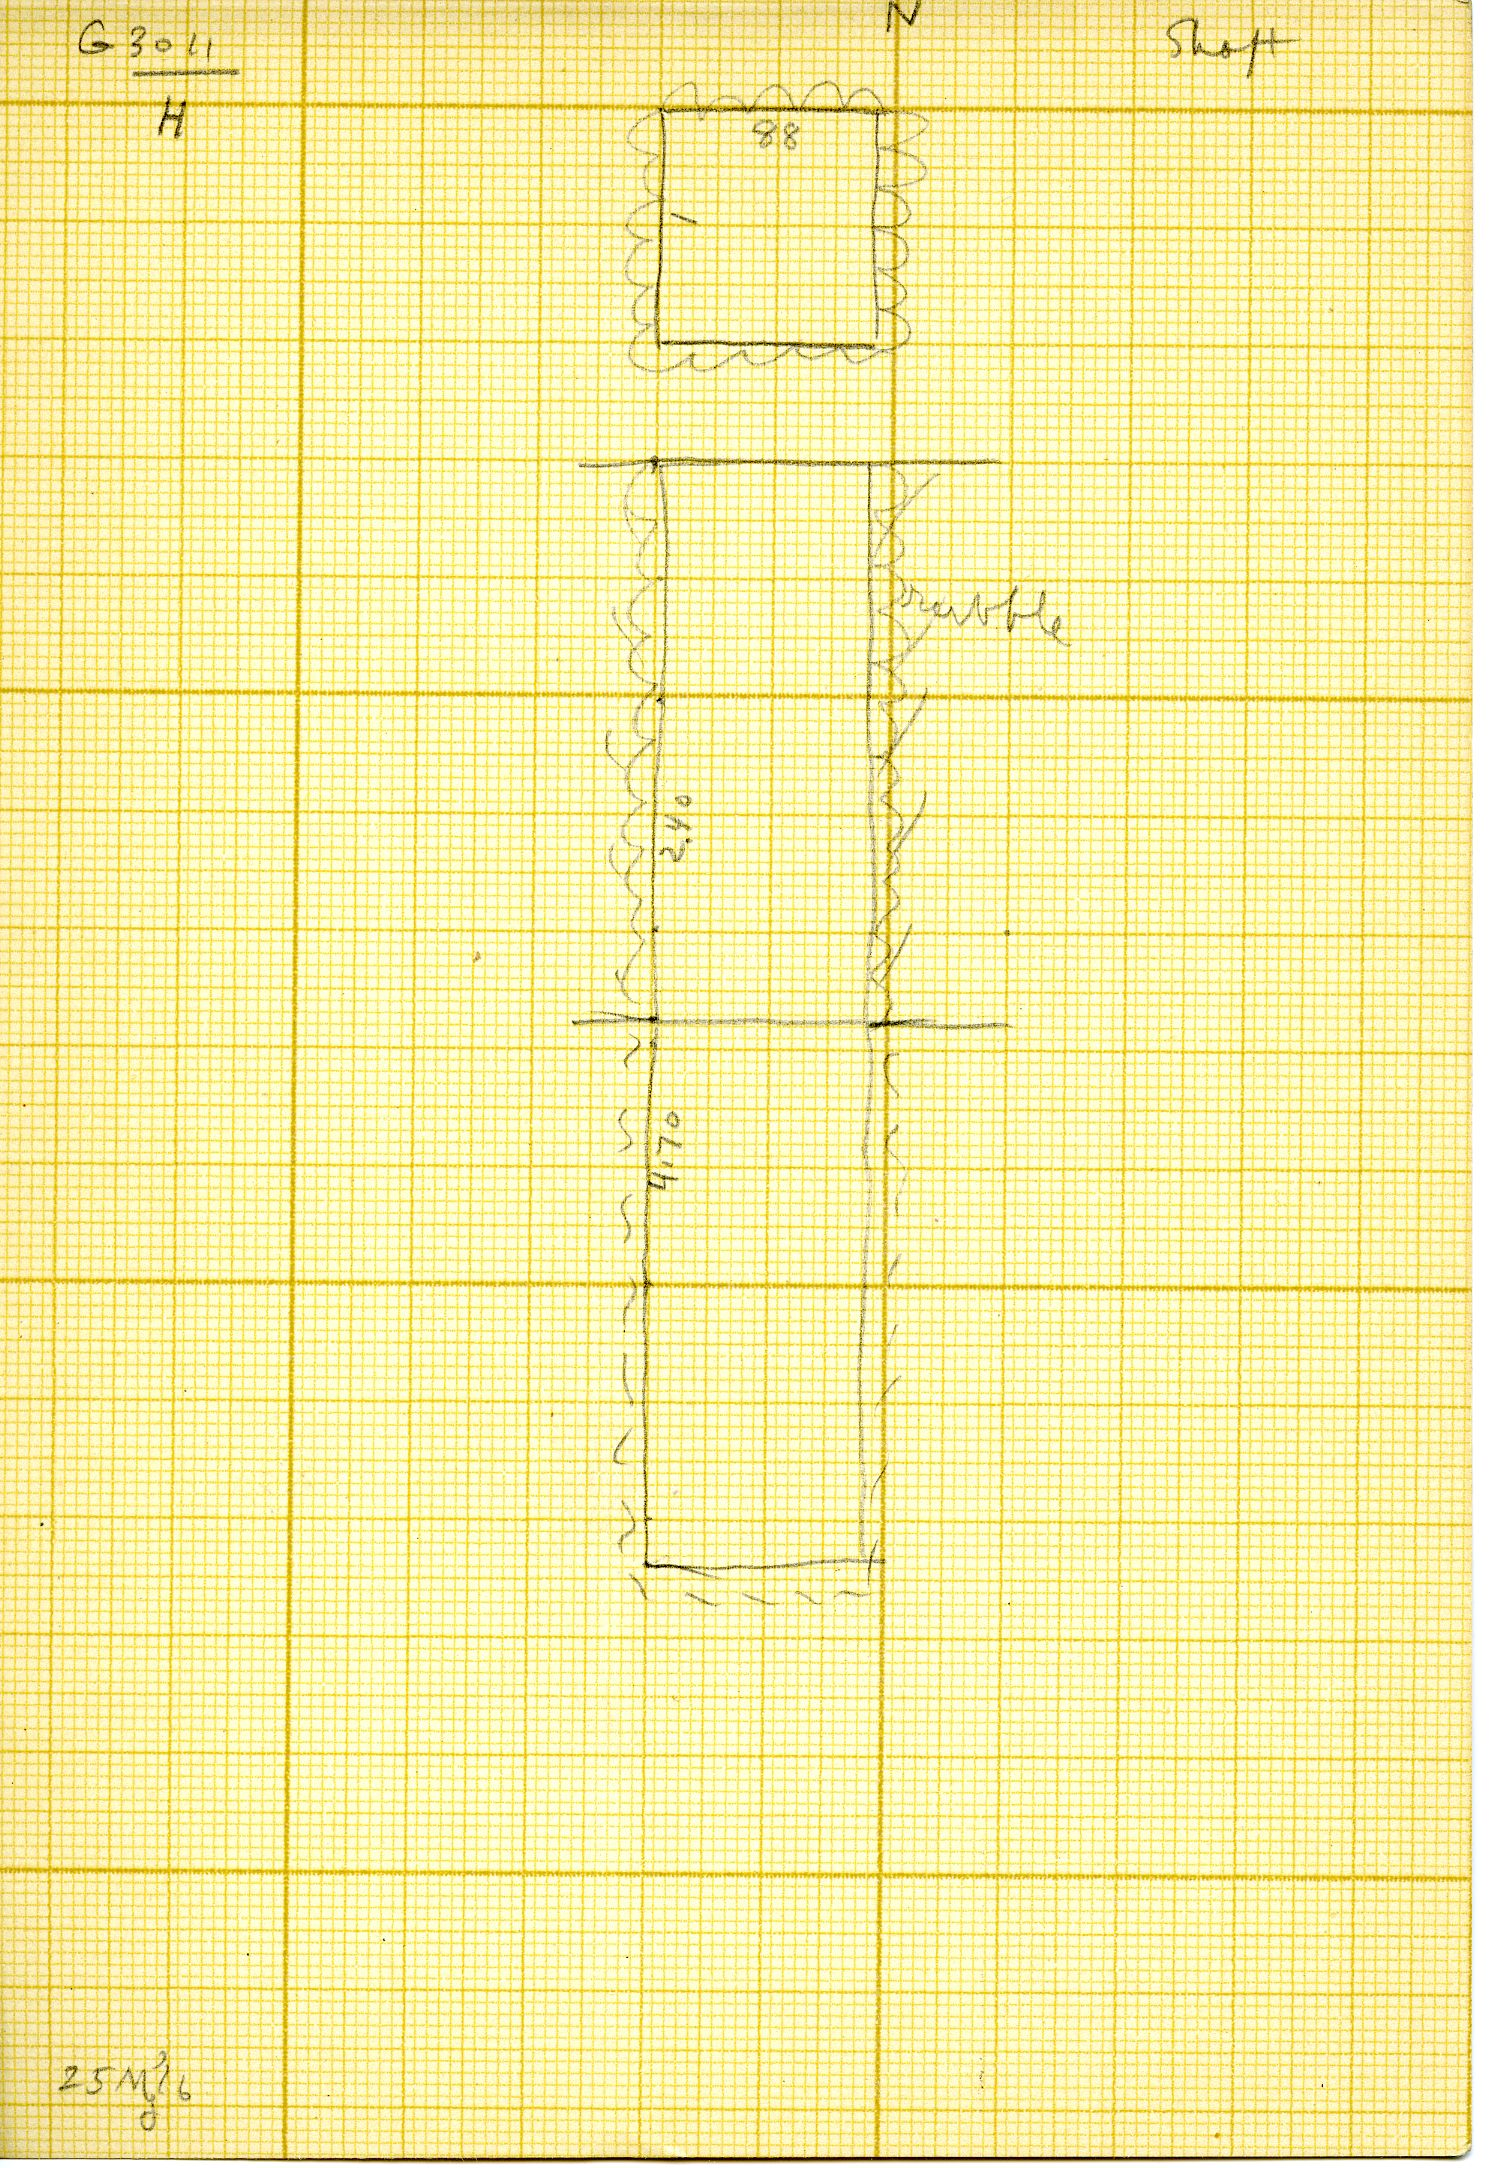 Maps and plans: G 3011, Shaft H